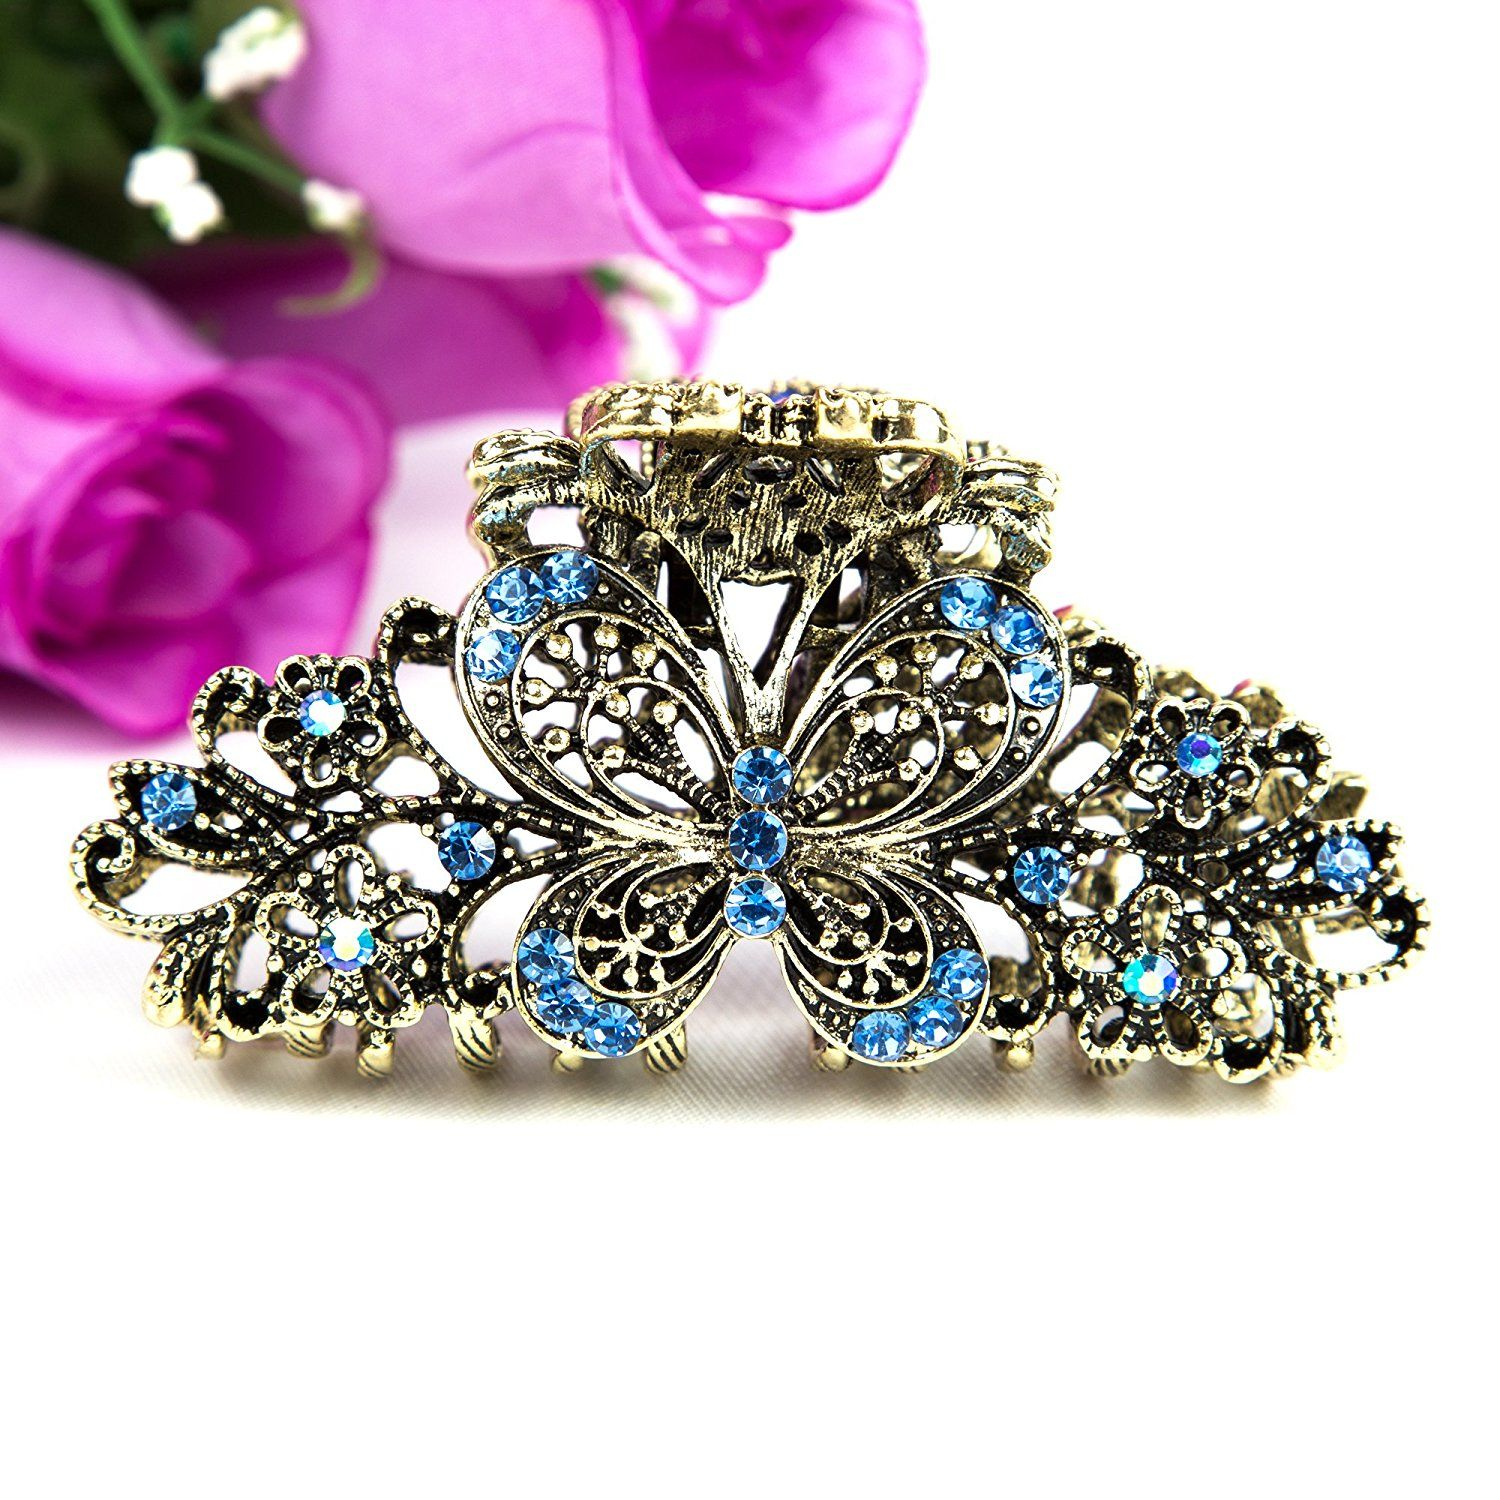 Beuautyxyz Blue color Crystal Butterfly/flower Hair Claw Clip Pin * Visit the image link for more details. #hairdo